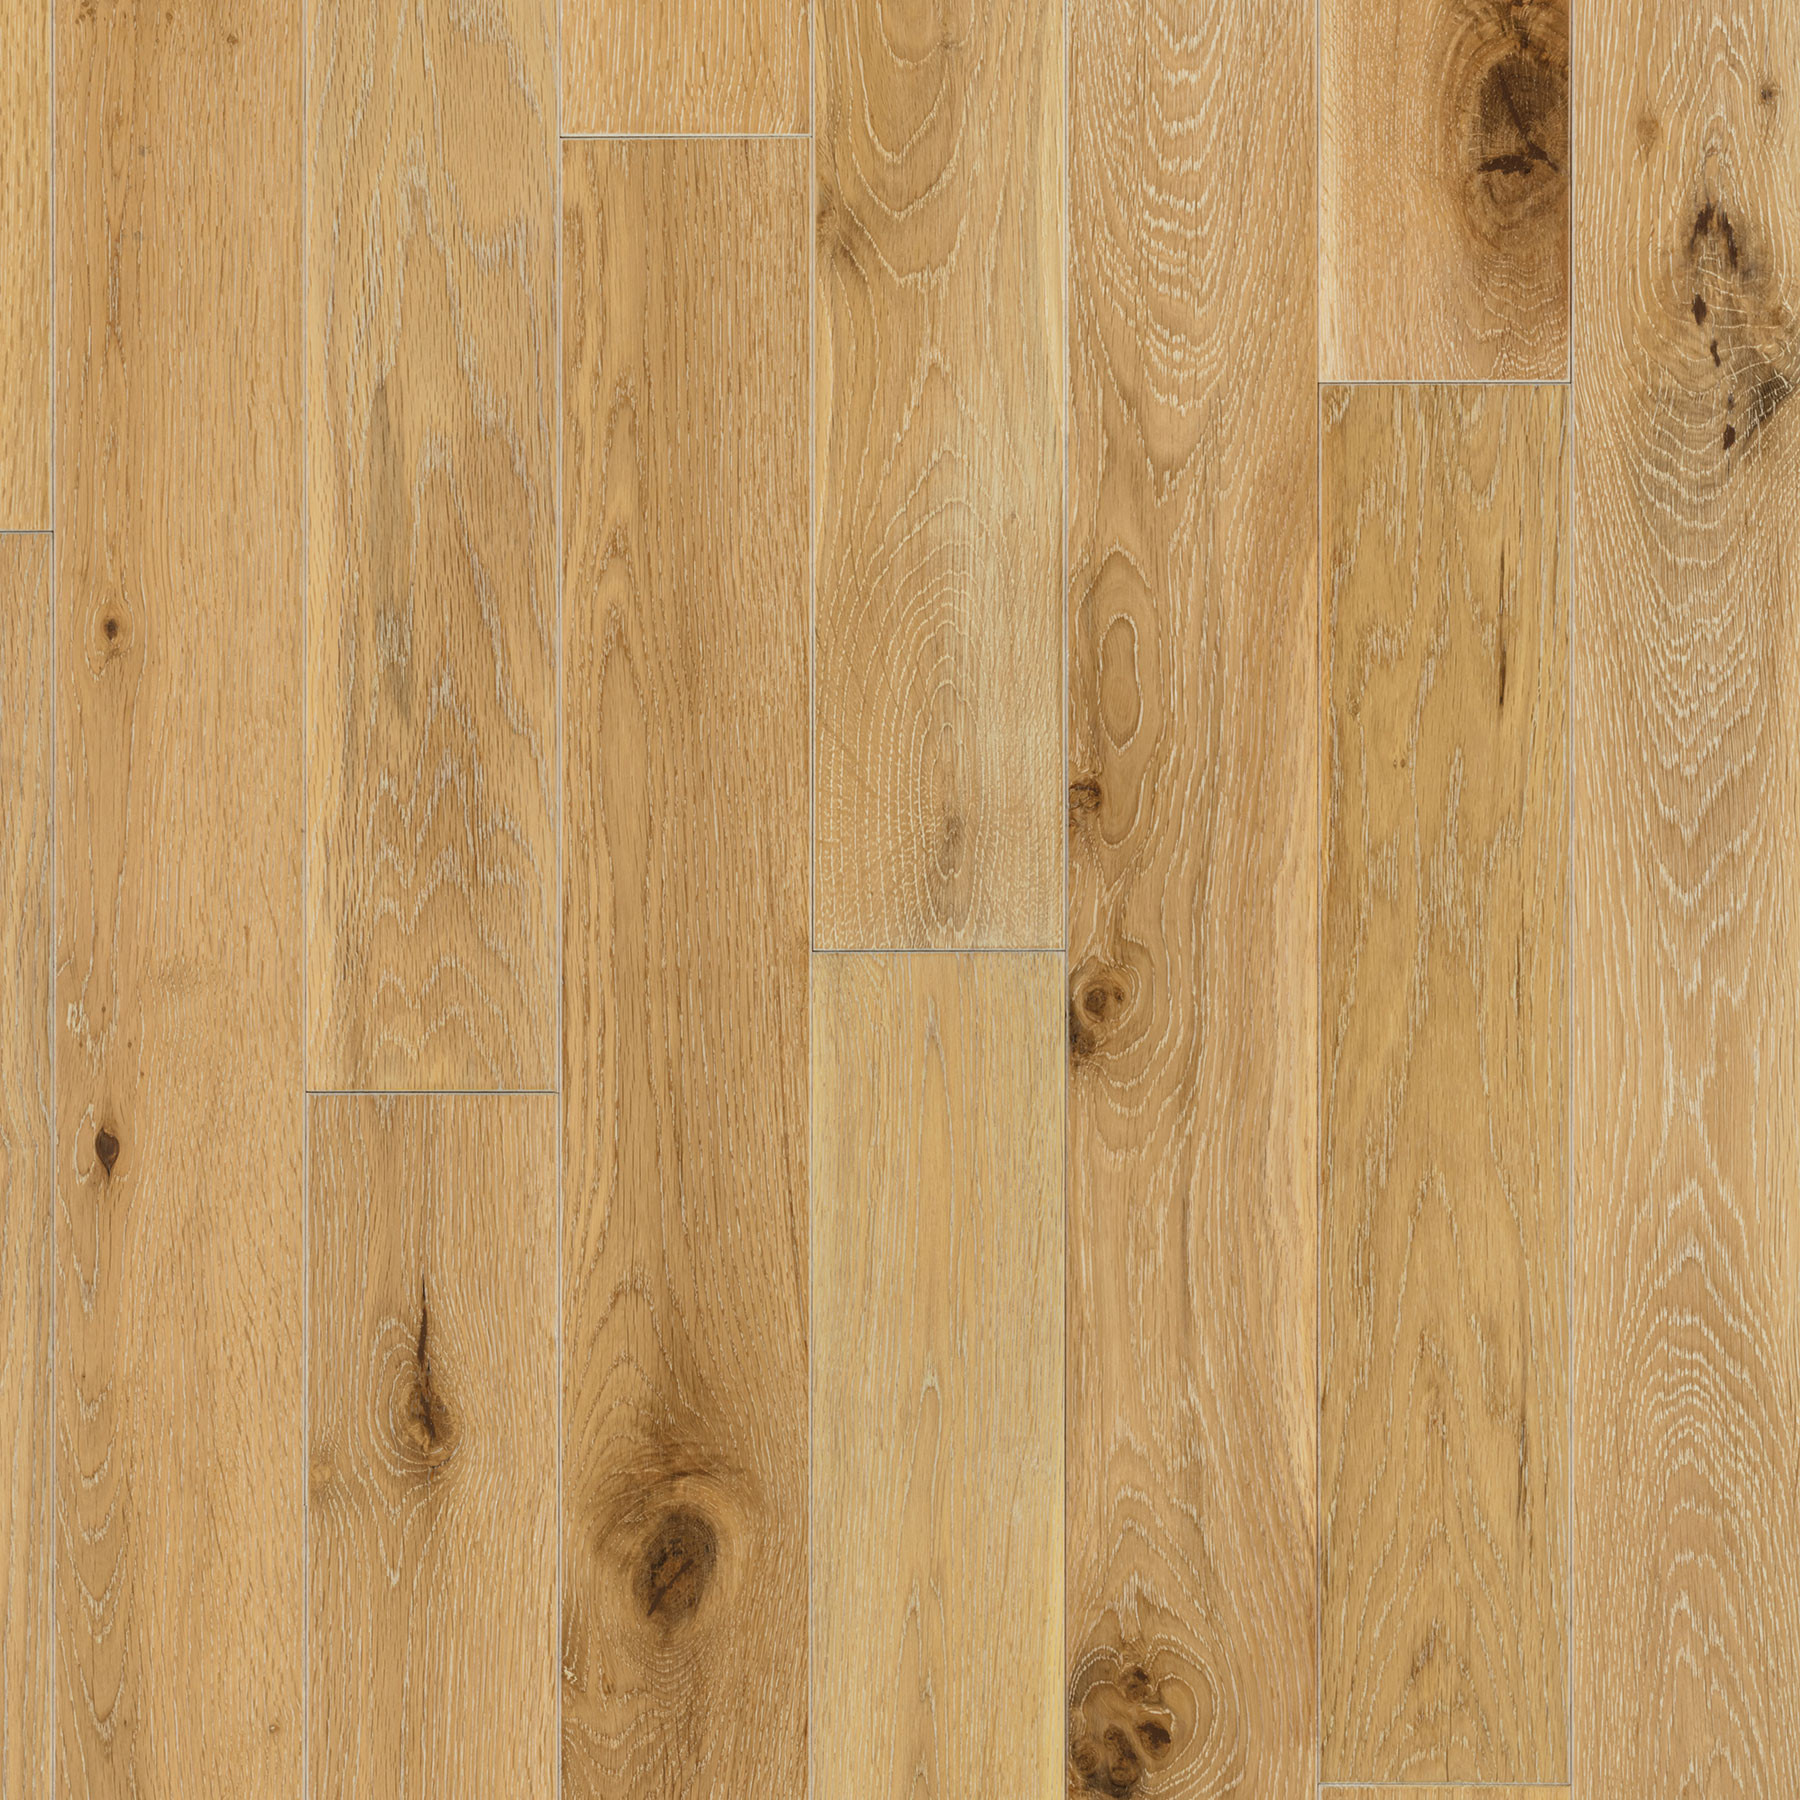 maple hardwood flooring hardness of harbor oak 3 1 2″ white oak white washed etx surfaces with etx